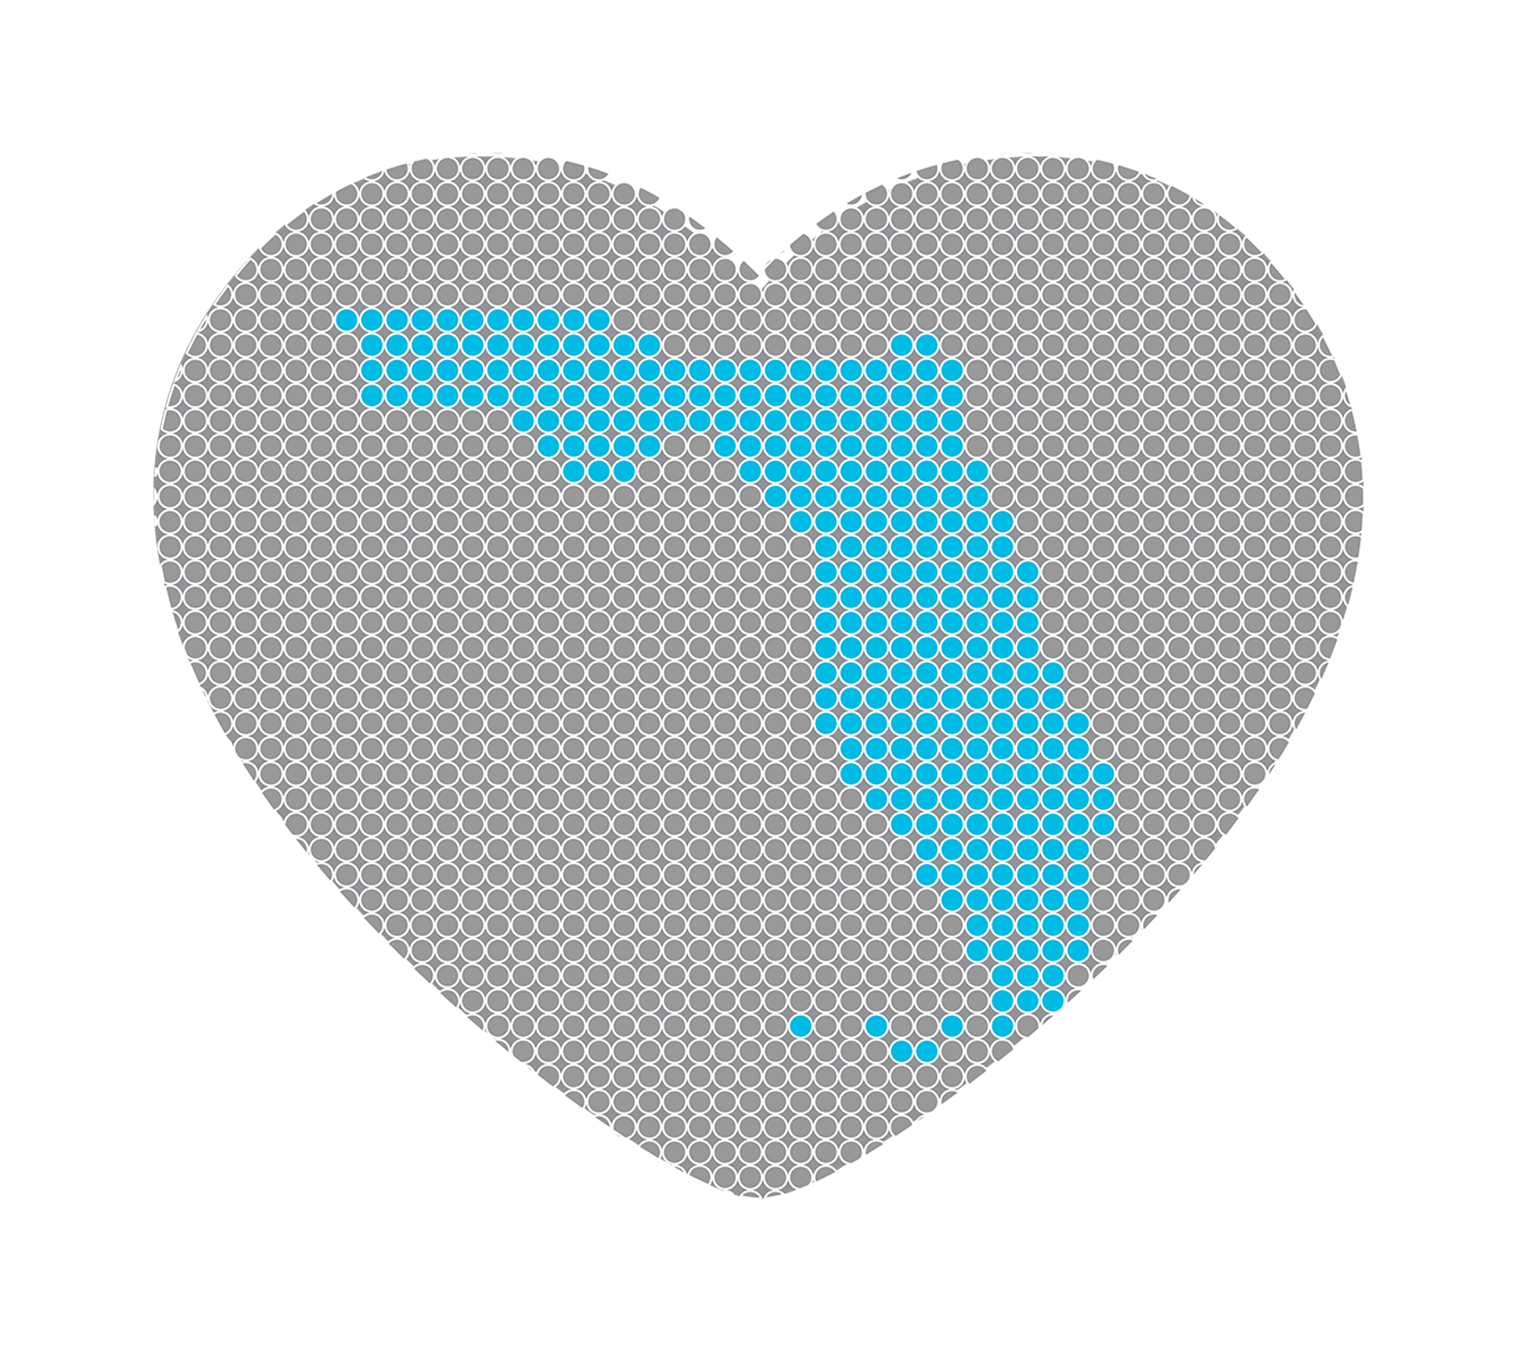 Florida encapsulated by a heart